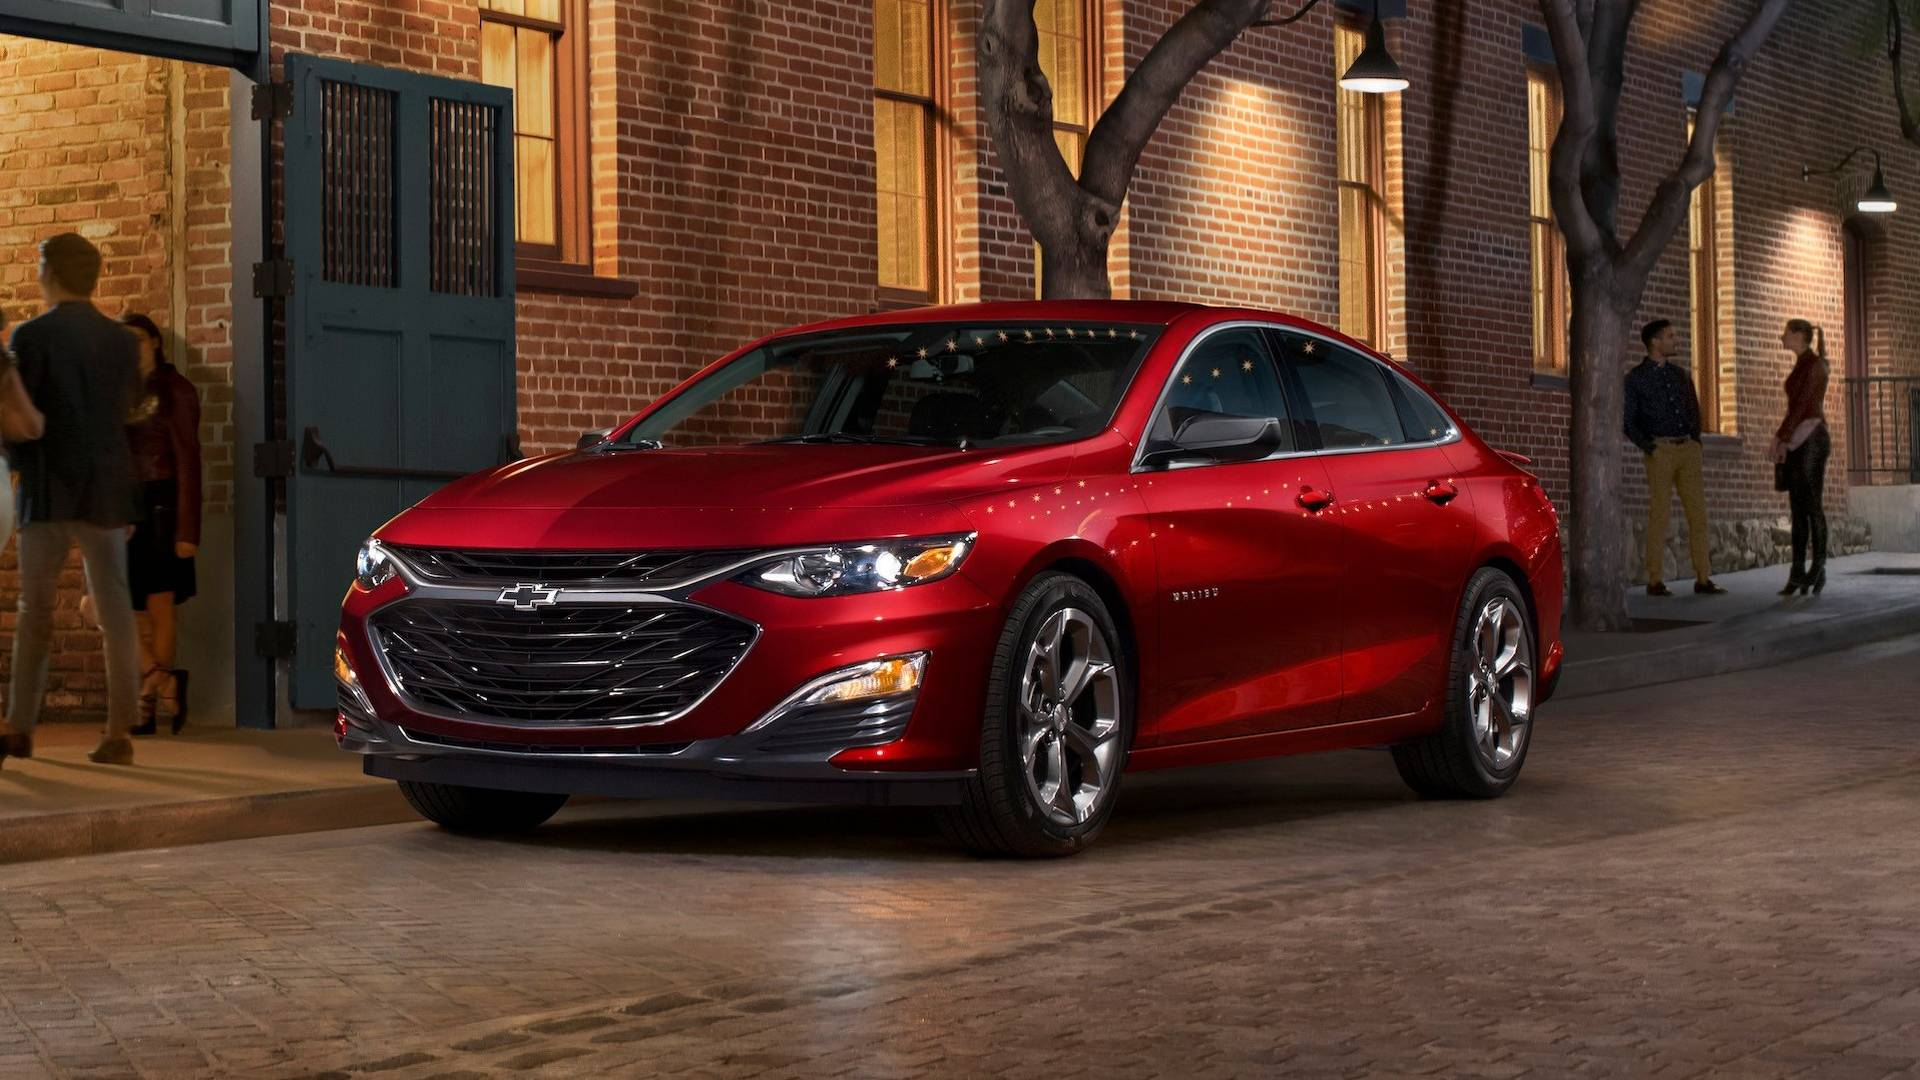 Black Chevy Cruze >> 2019 Chevrolet Malibu Joins The Automaker's Facelifted Passenger Car Portfolio - autoevolution